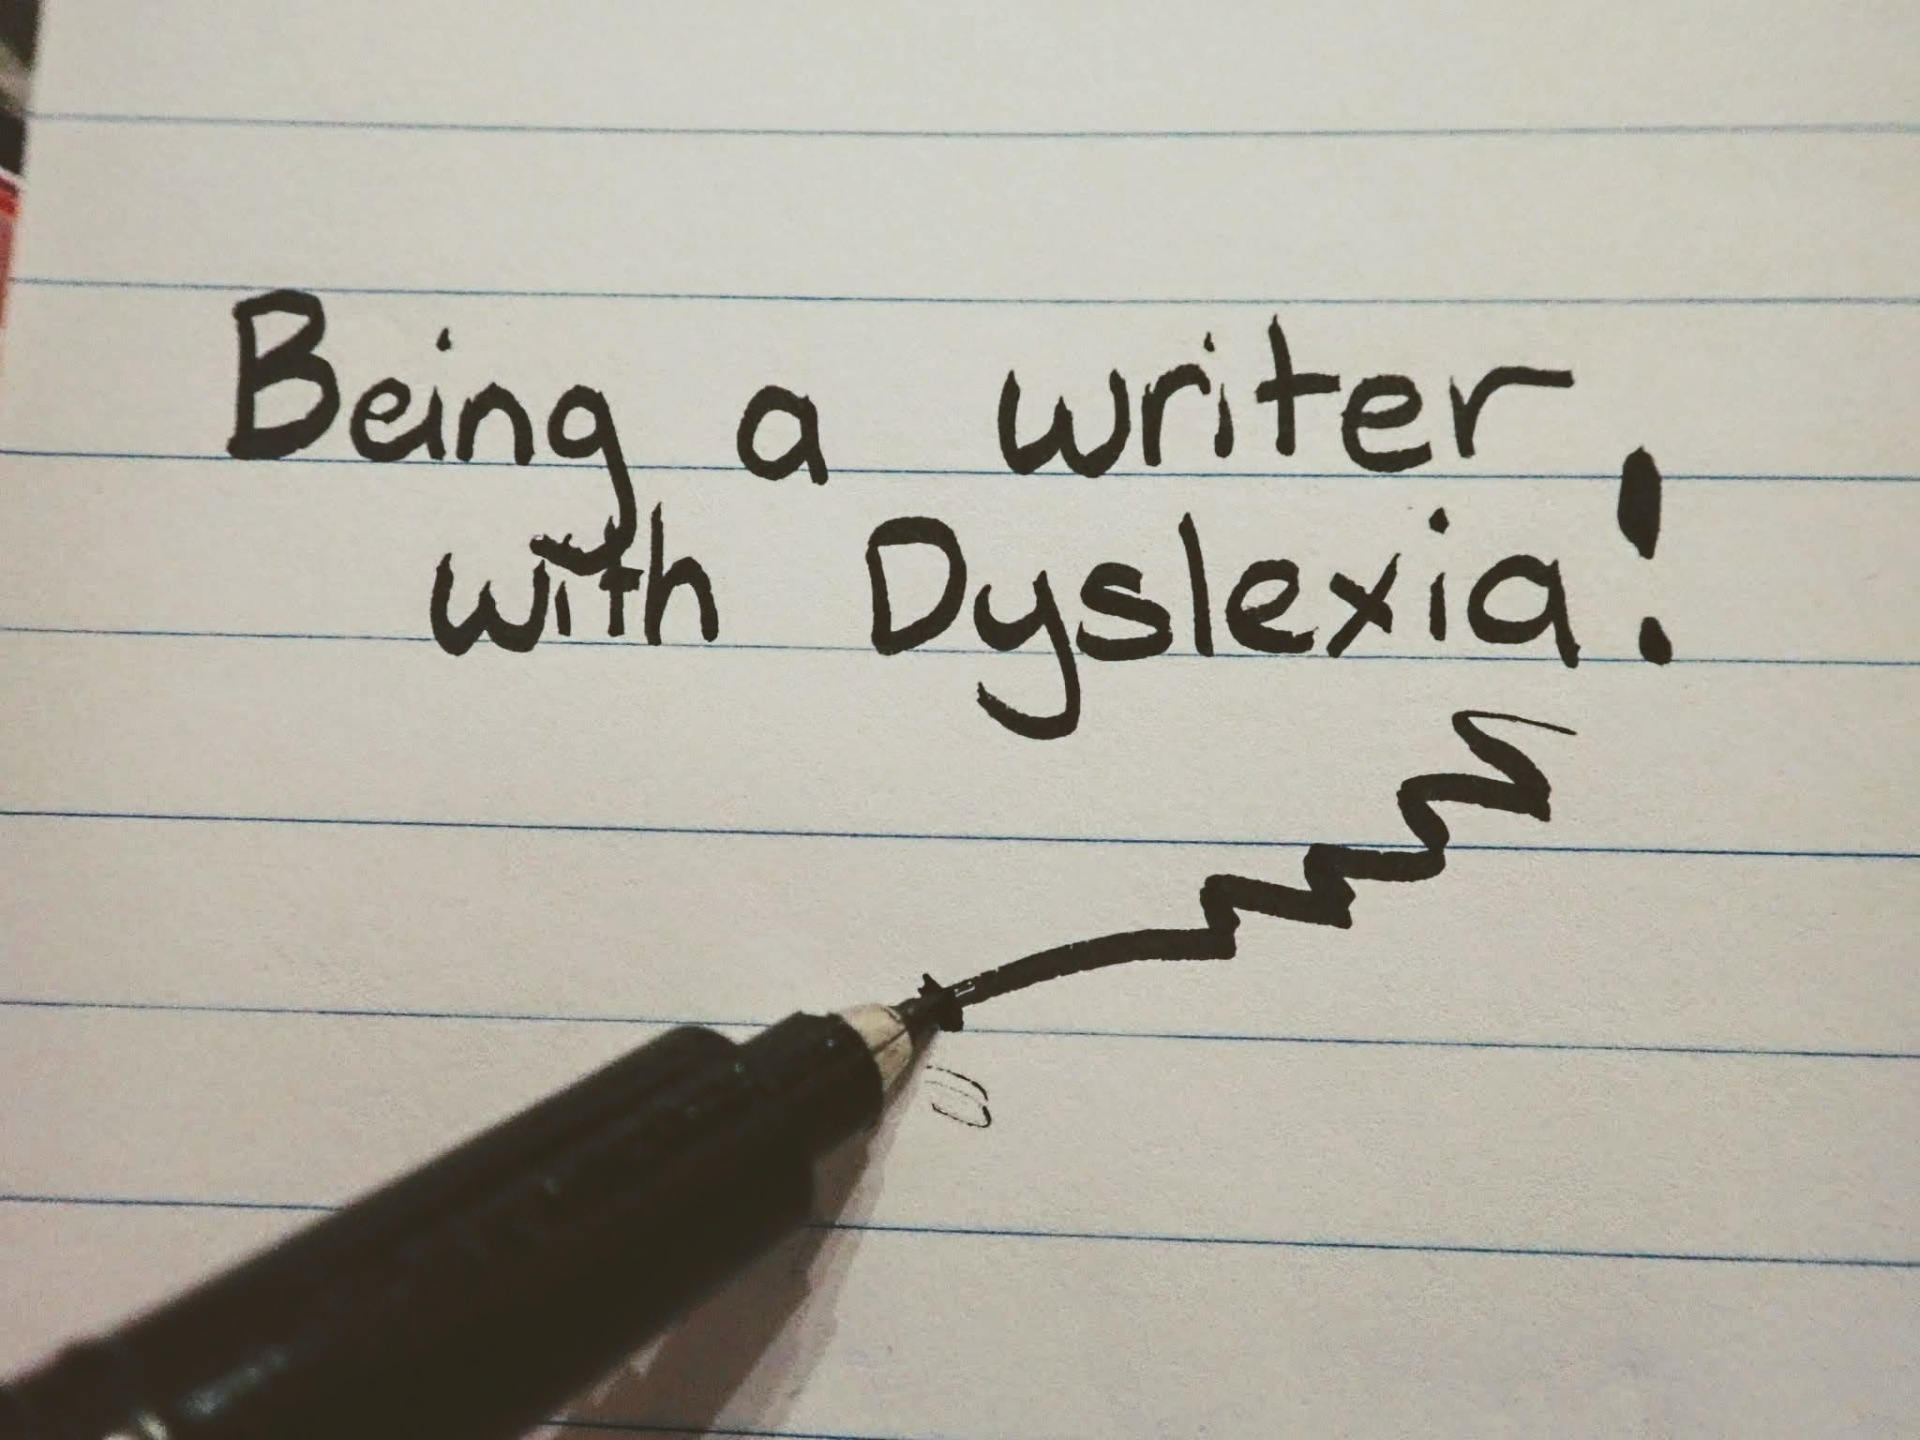 Being a writer with Dyslexia - How Dyslexia affects me and how I overcome my struggles!